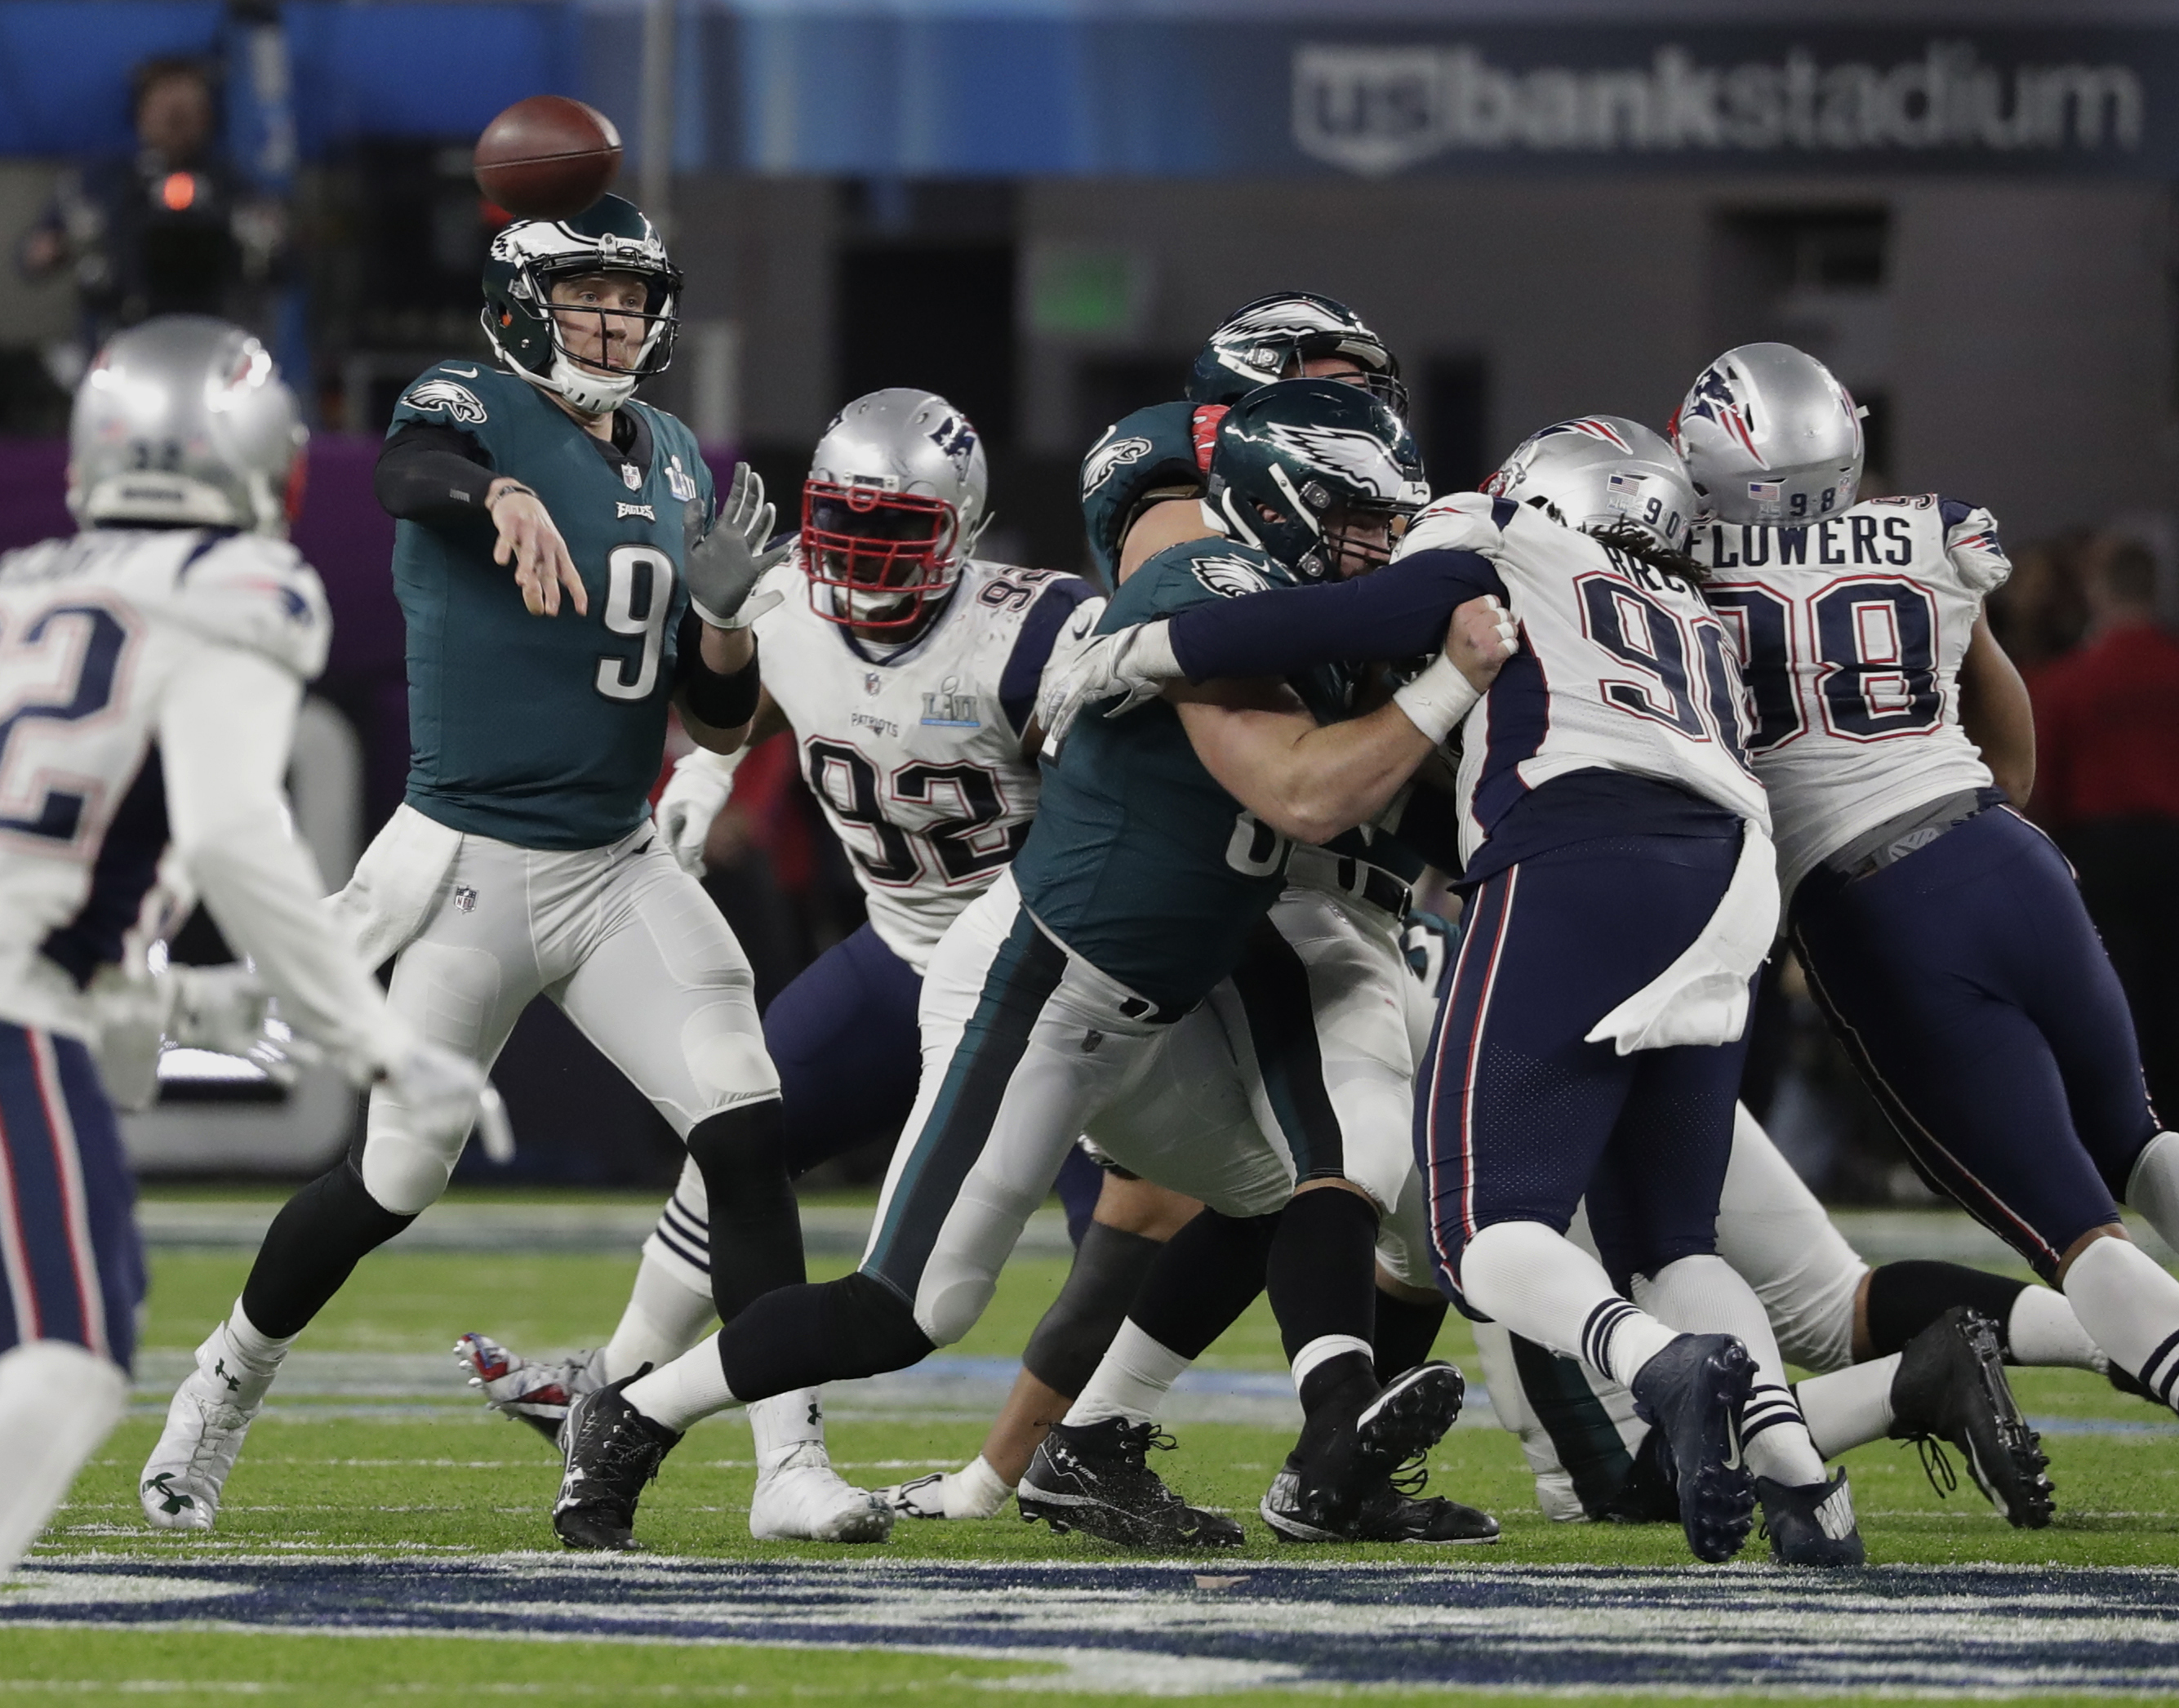 <div class='meta'><div class='origin-logo' data-origin='AP'></div><span class='caption-text' data-credit='AP Photo/Tony Gutierrez'>Philadelphia Eagles quarterback Nick Foles (9) throws against the New England Patriots, during the second half of the NFL Super Bowl 52 football game.</span></div>